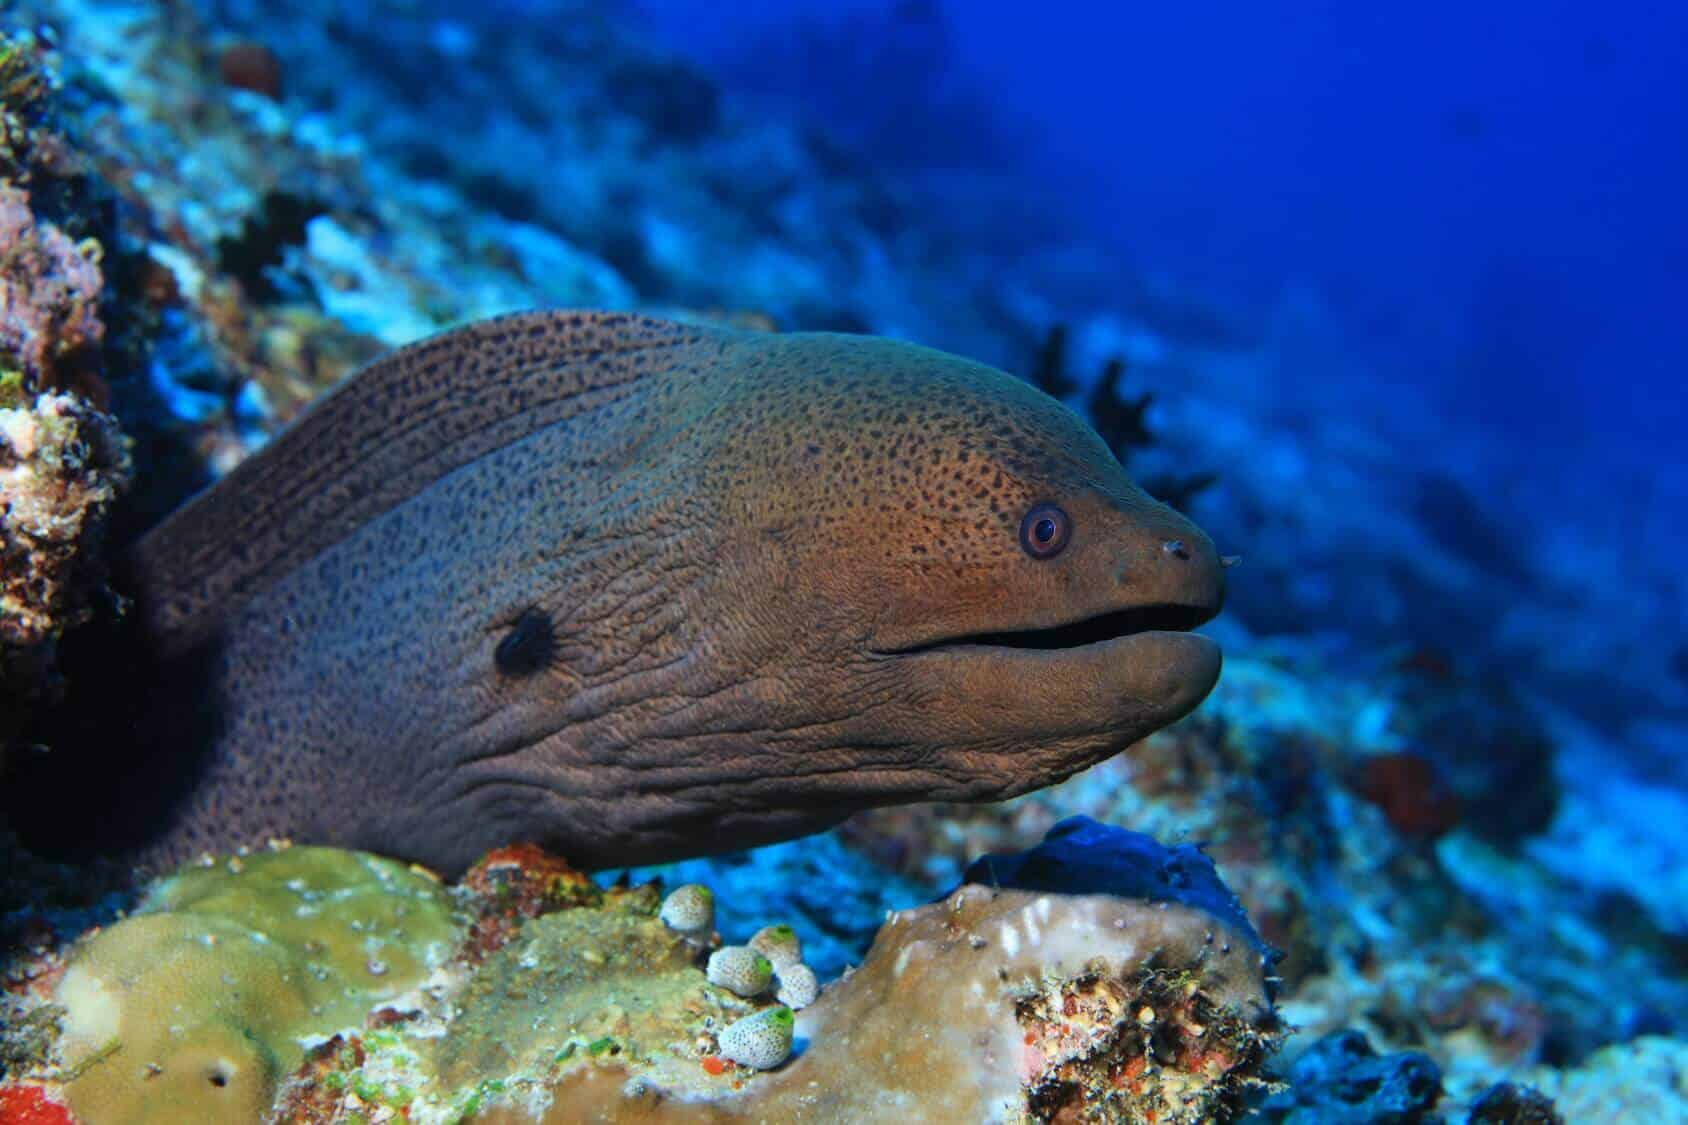 Moray Eel Complete Guide: Species, Habitat and Much More... - Fishkeeping  World